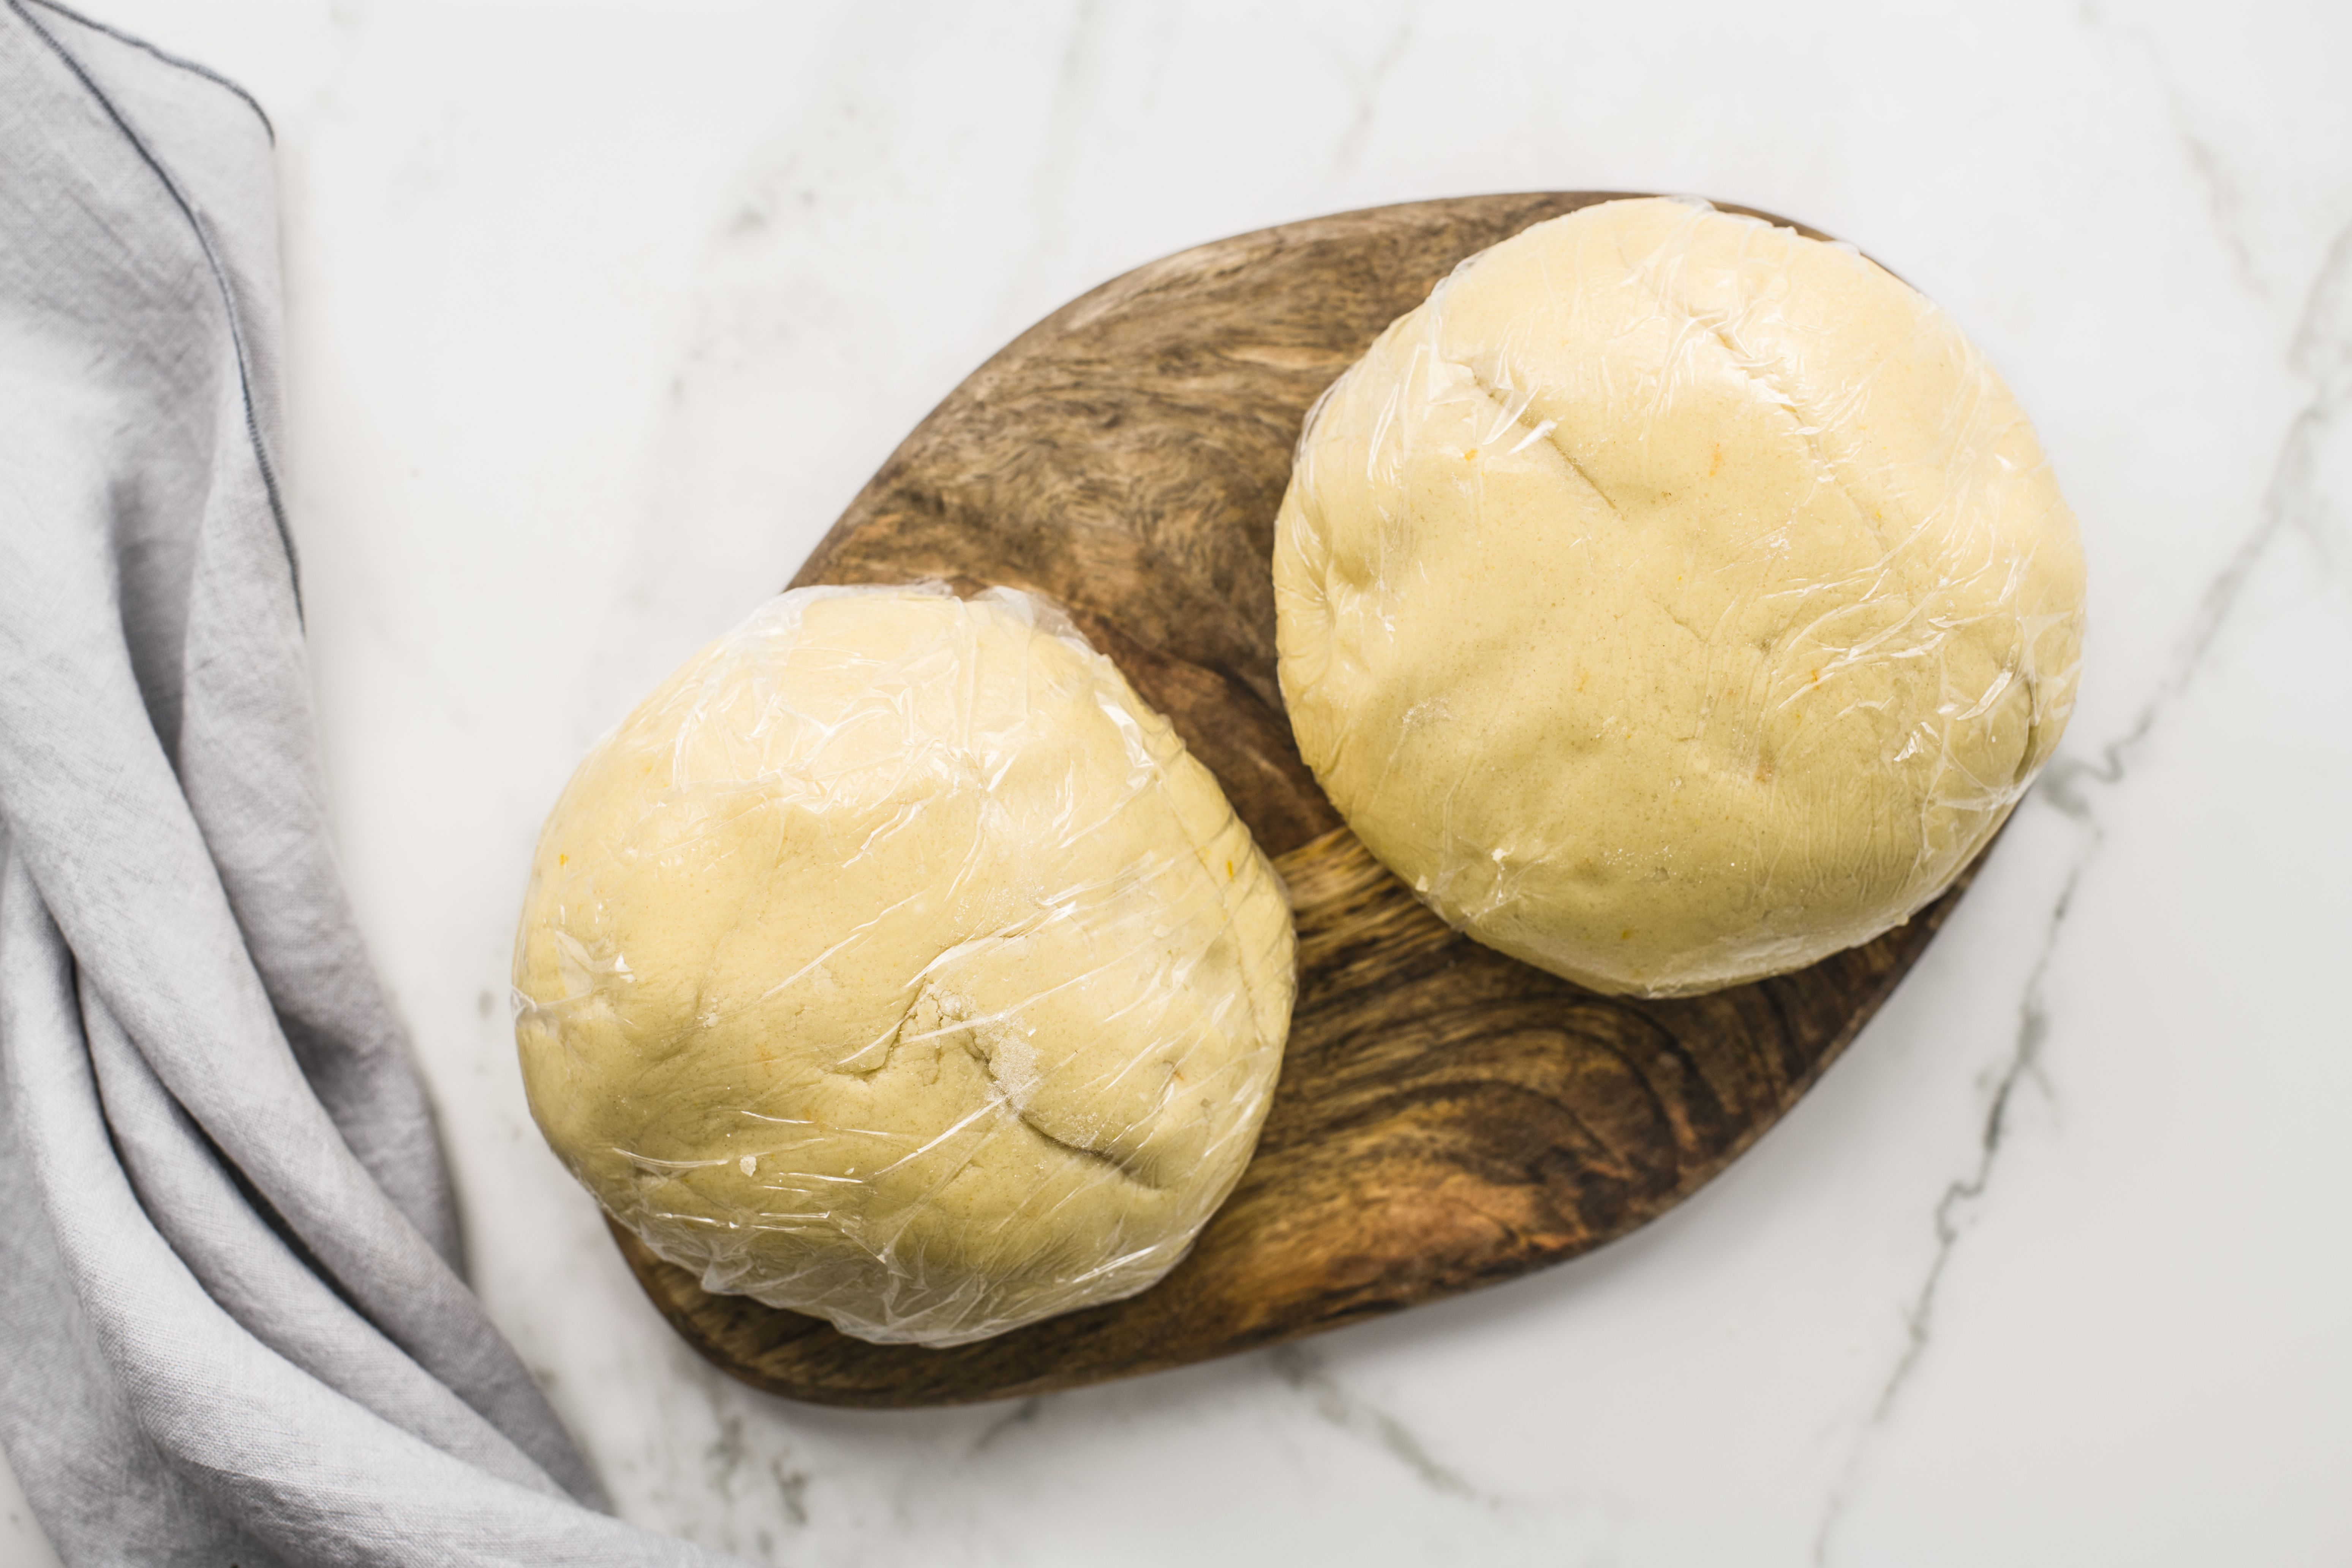 Diving the dough in half